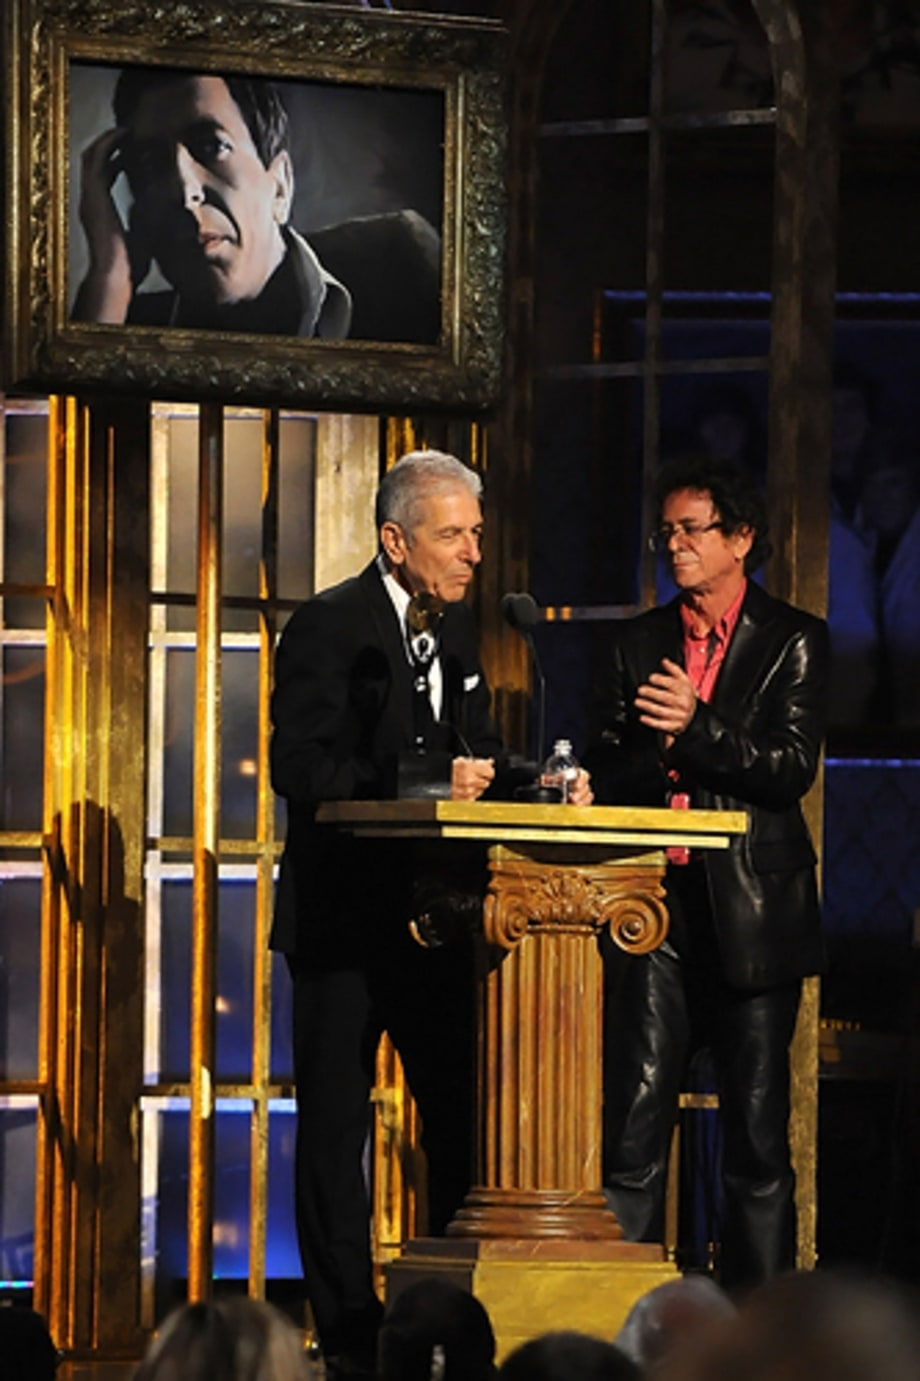 Rock and Roll Hall of Fame Induction